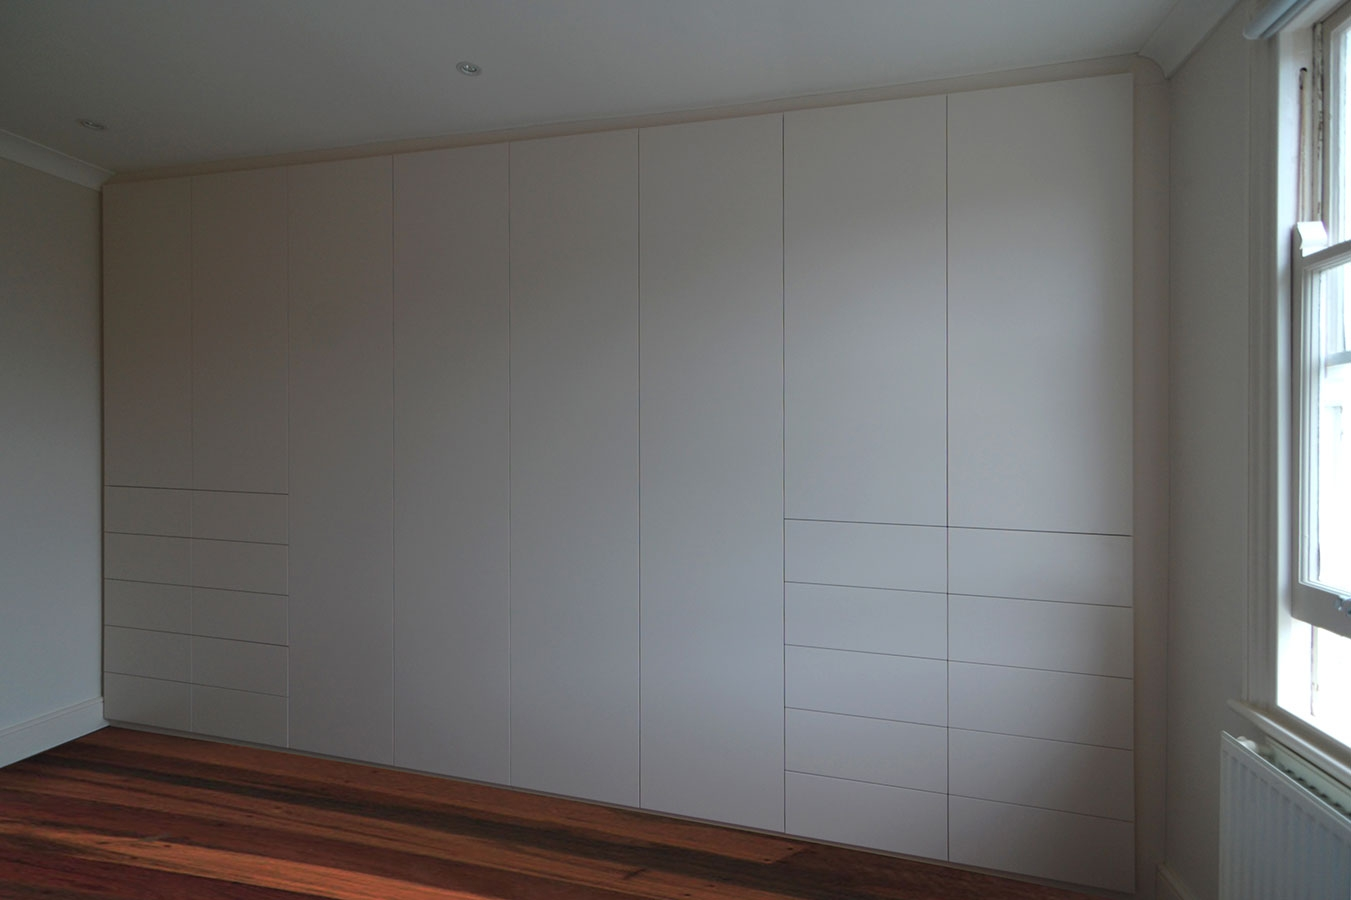 Fitted Bedrooms Wardrobes Beds And Chests Of Drawers Regarding Wall Wardrobes (View 5 of 15)